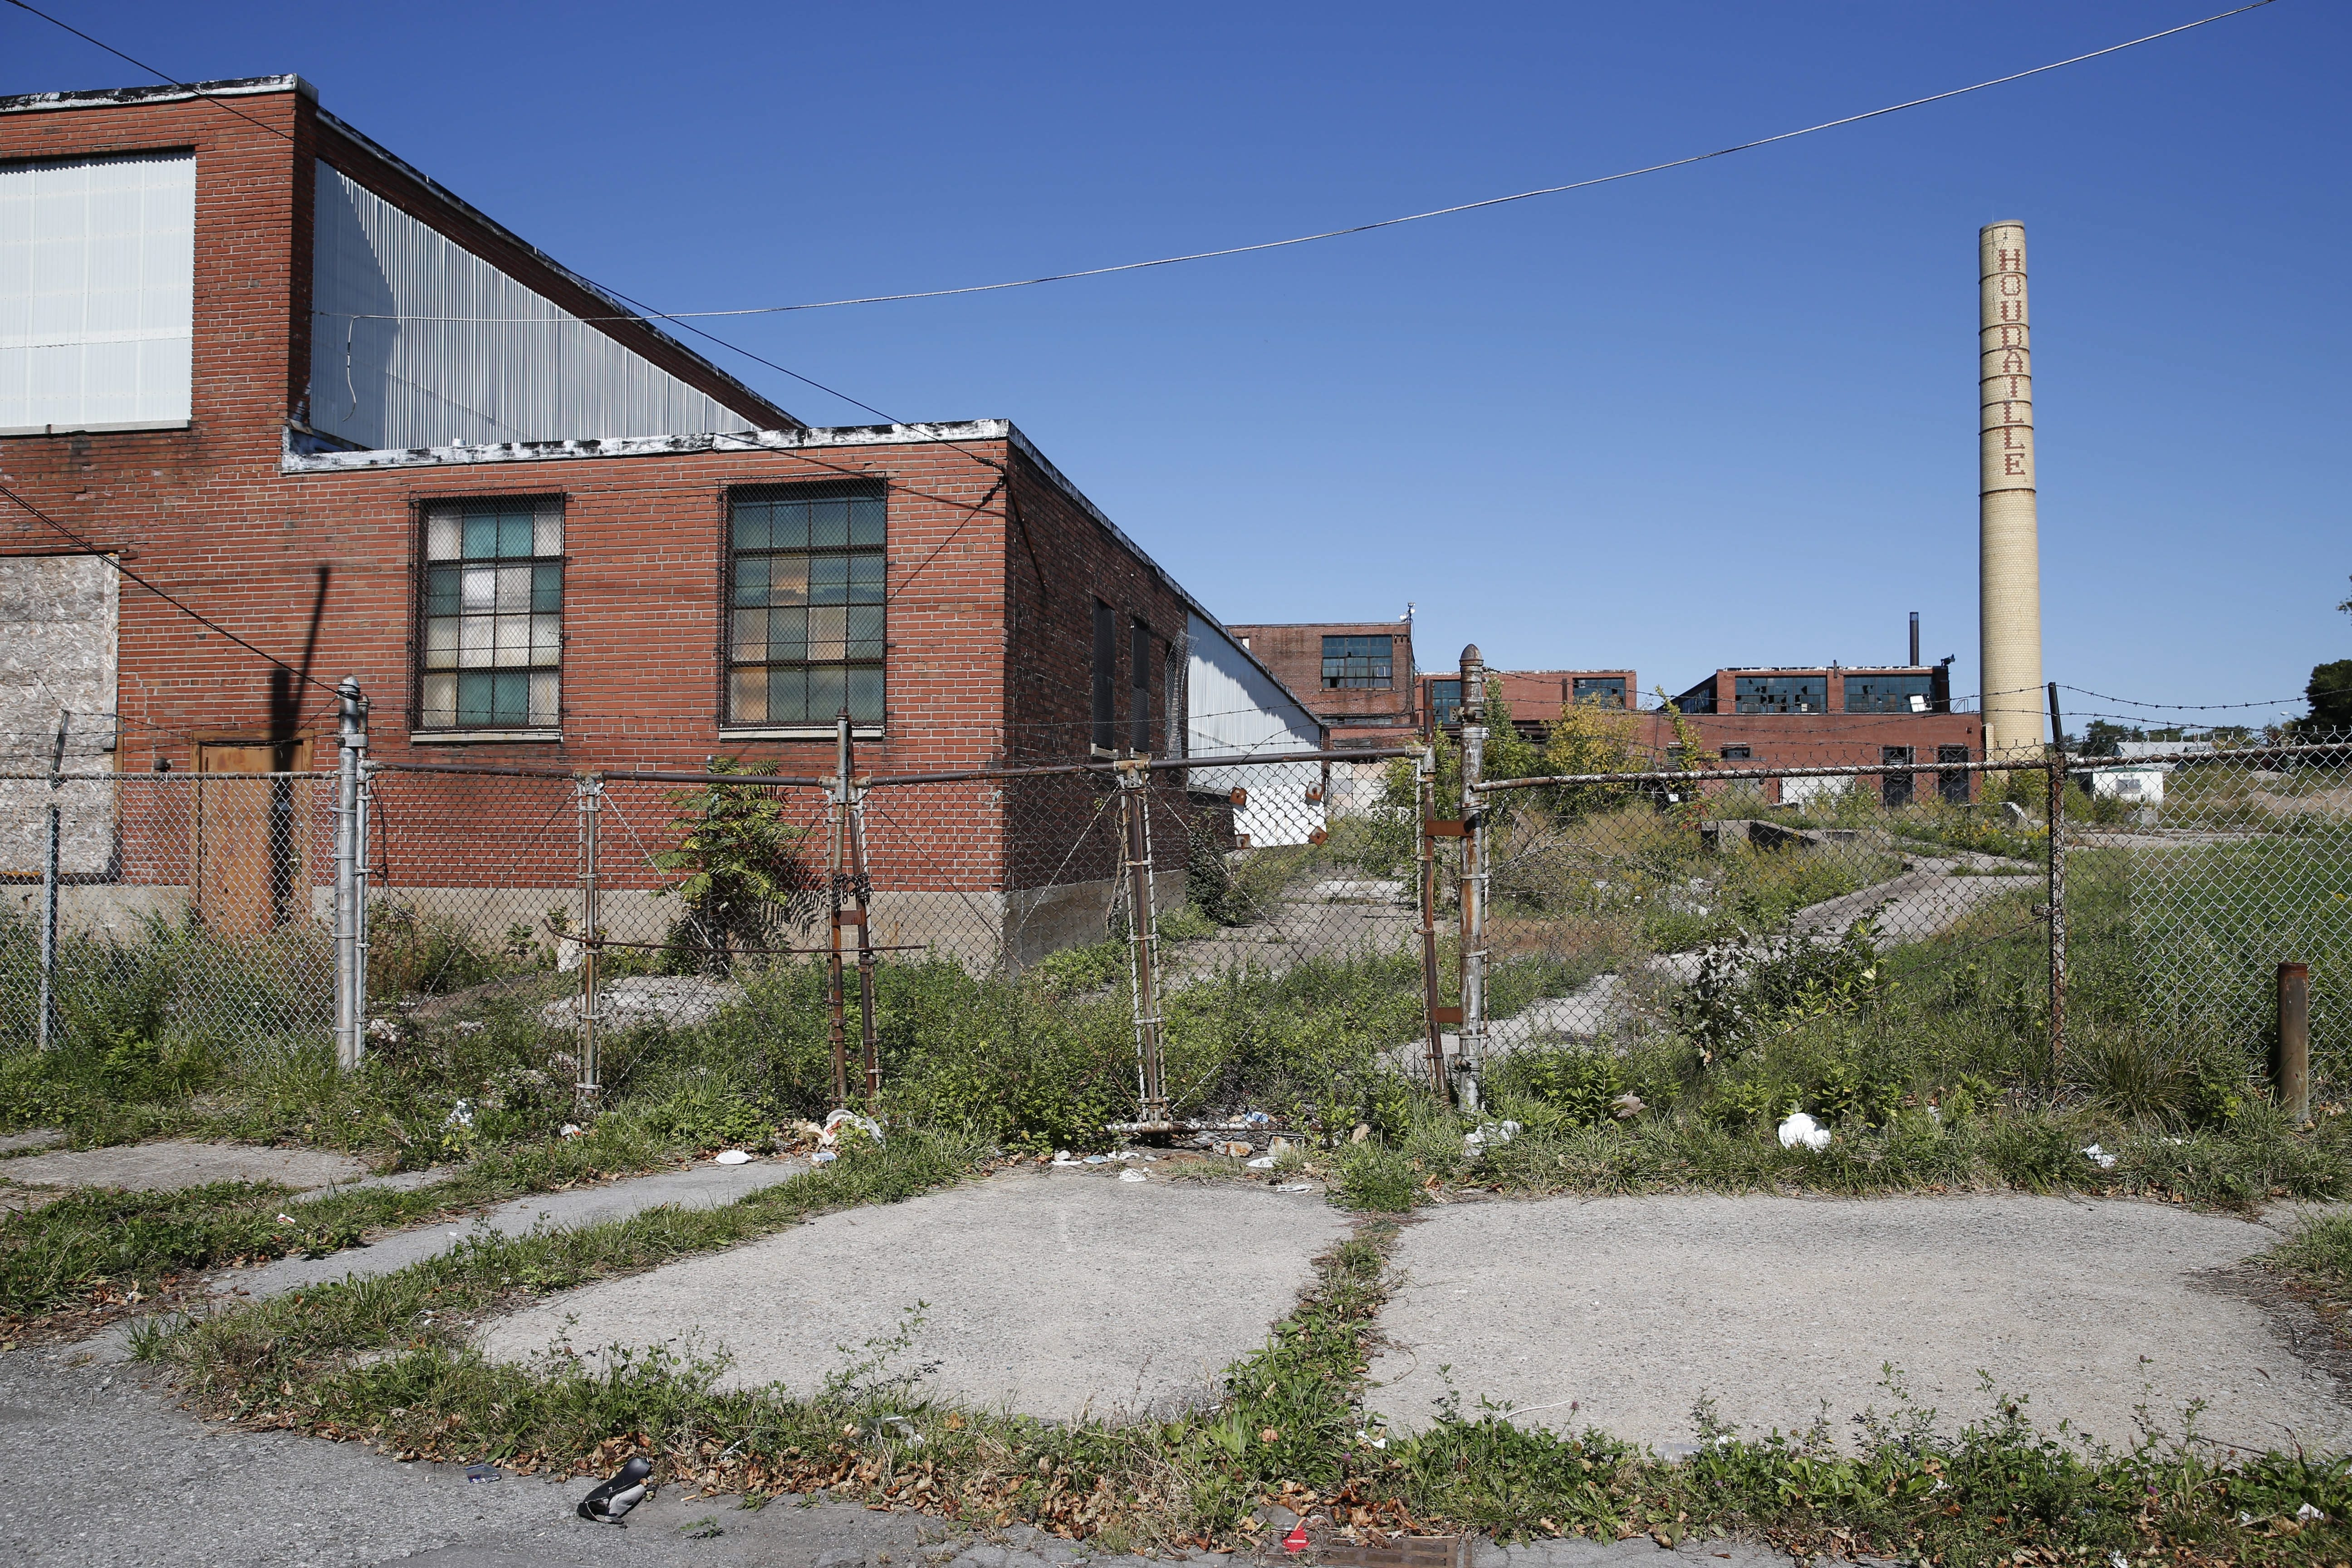 When cleaned up, the vacant industrial buildings in the Northland complex could be home to new, thriving manufacturers. (Derek Gee/Buffalo News file photo)